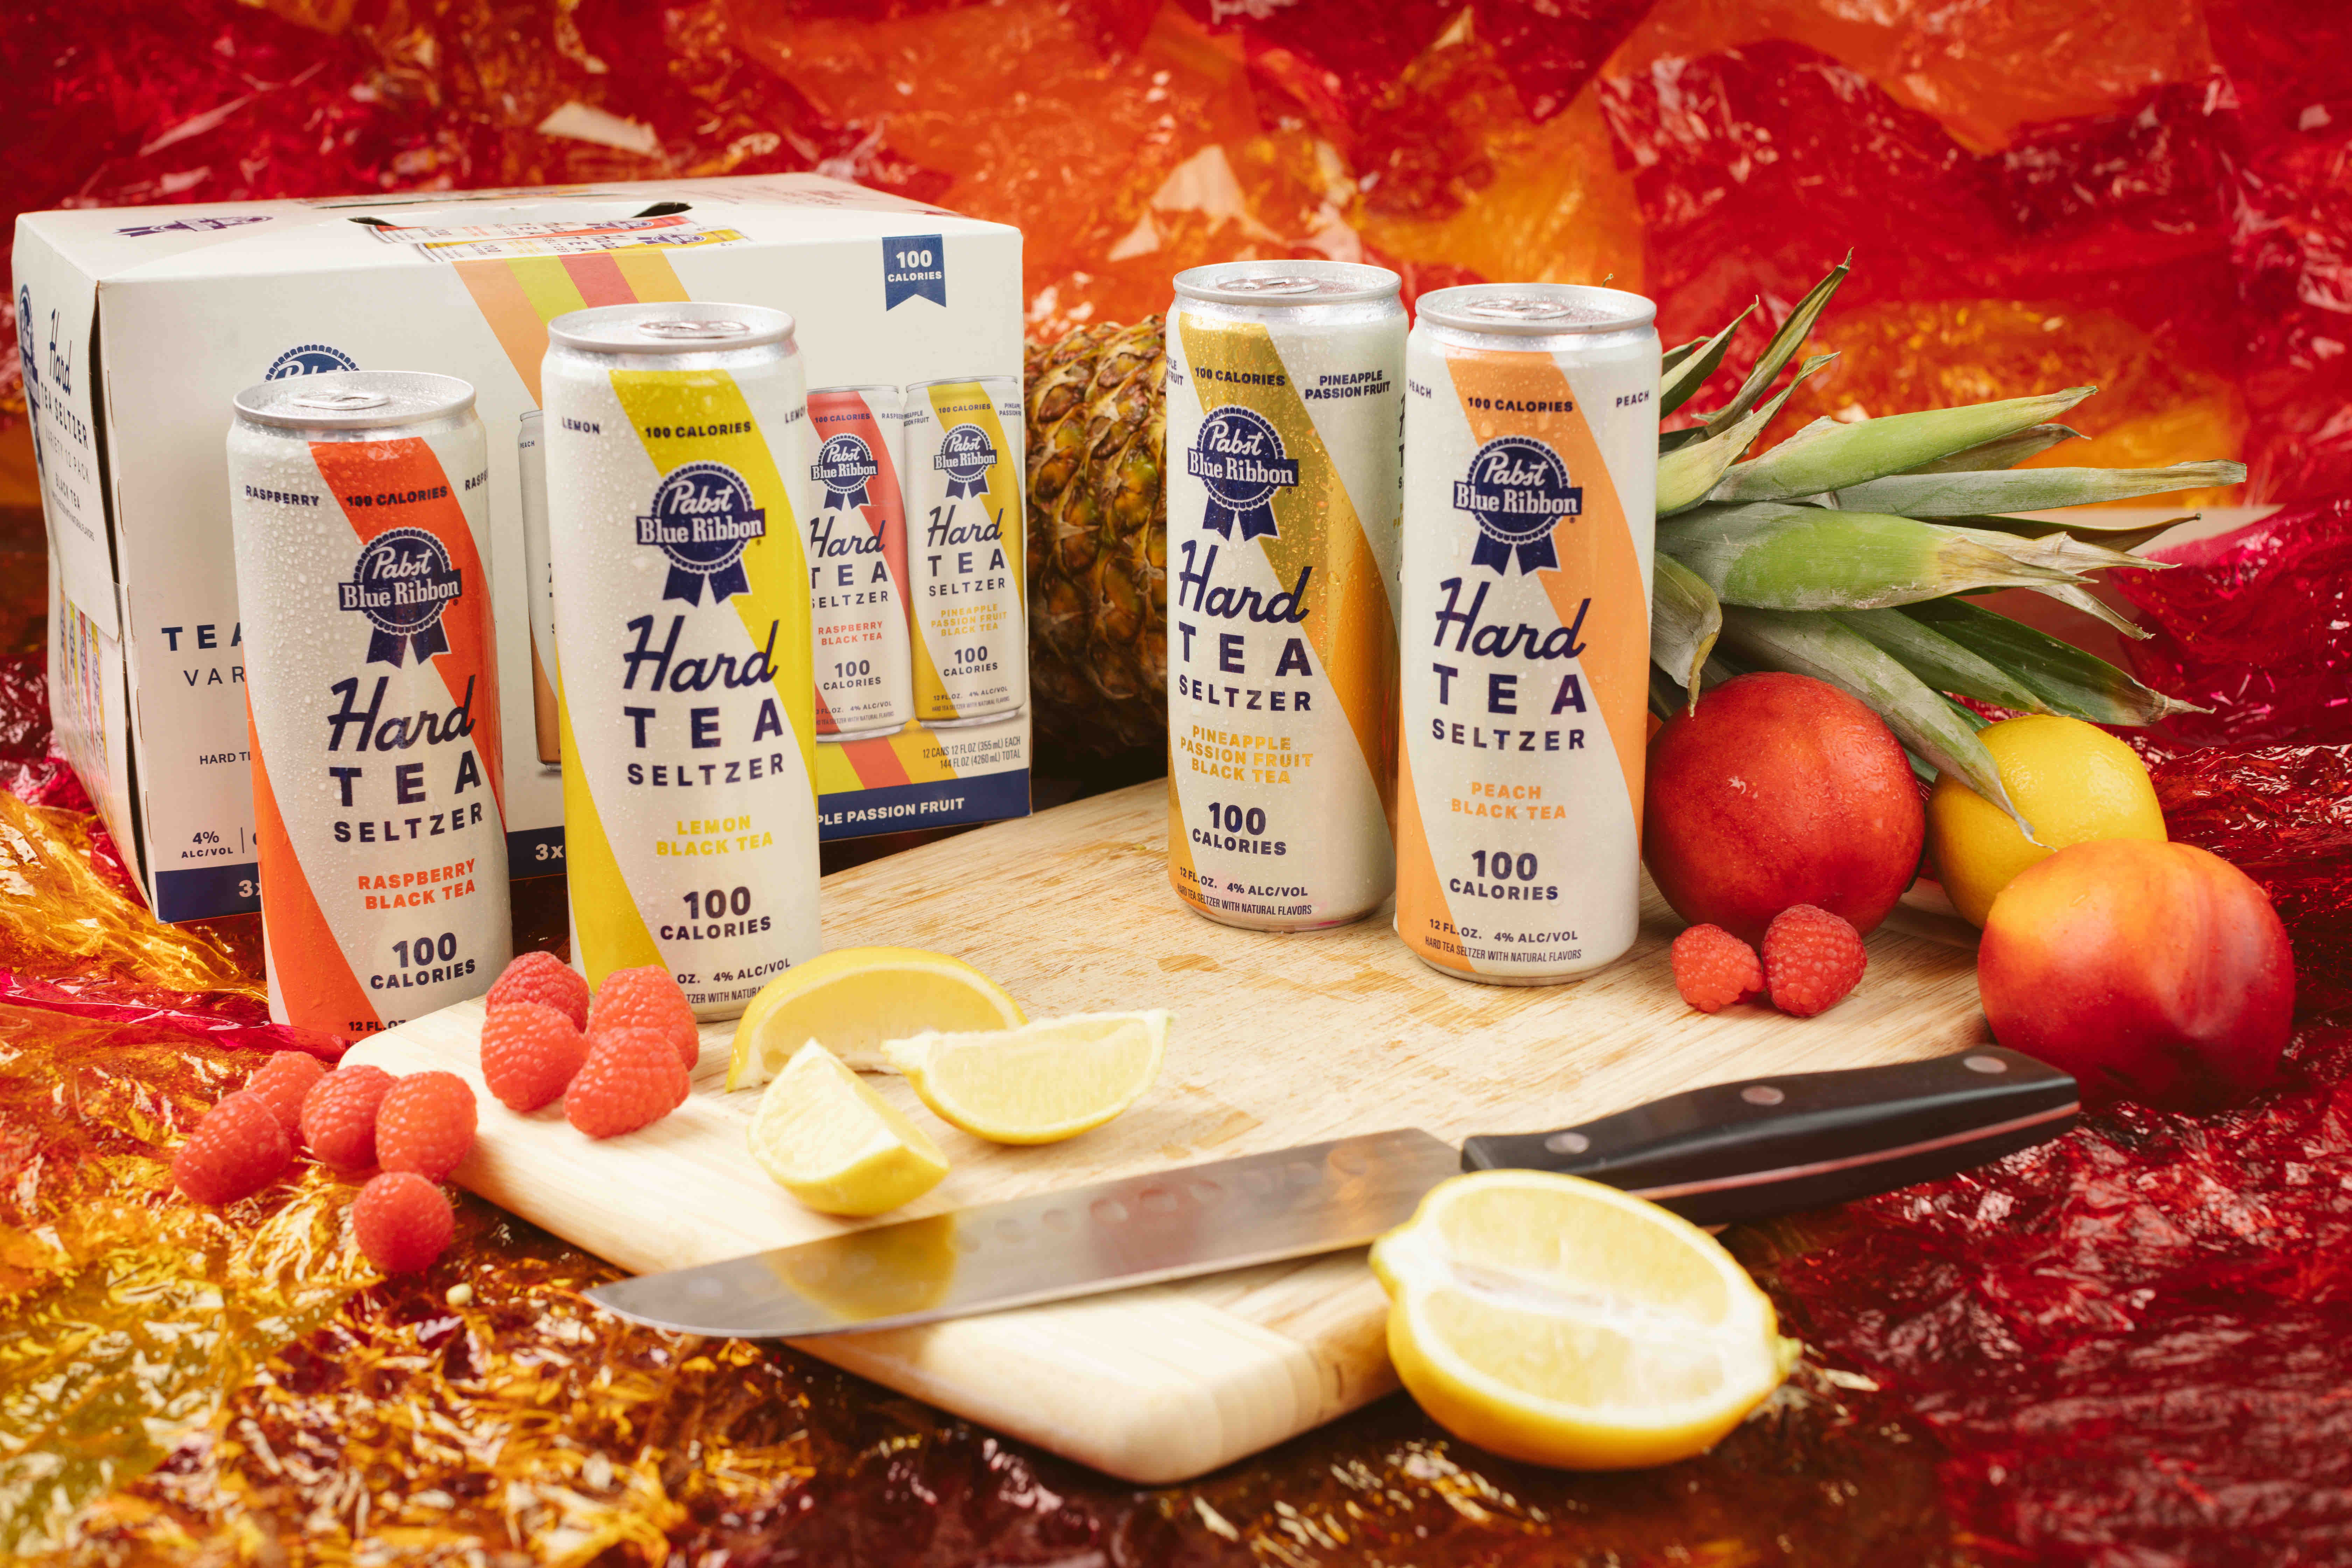 image of the new lineup of Pabst Blue Ribbon Hard Tea Seltzer courtesy of Pabst Brewing Co.